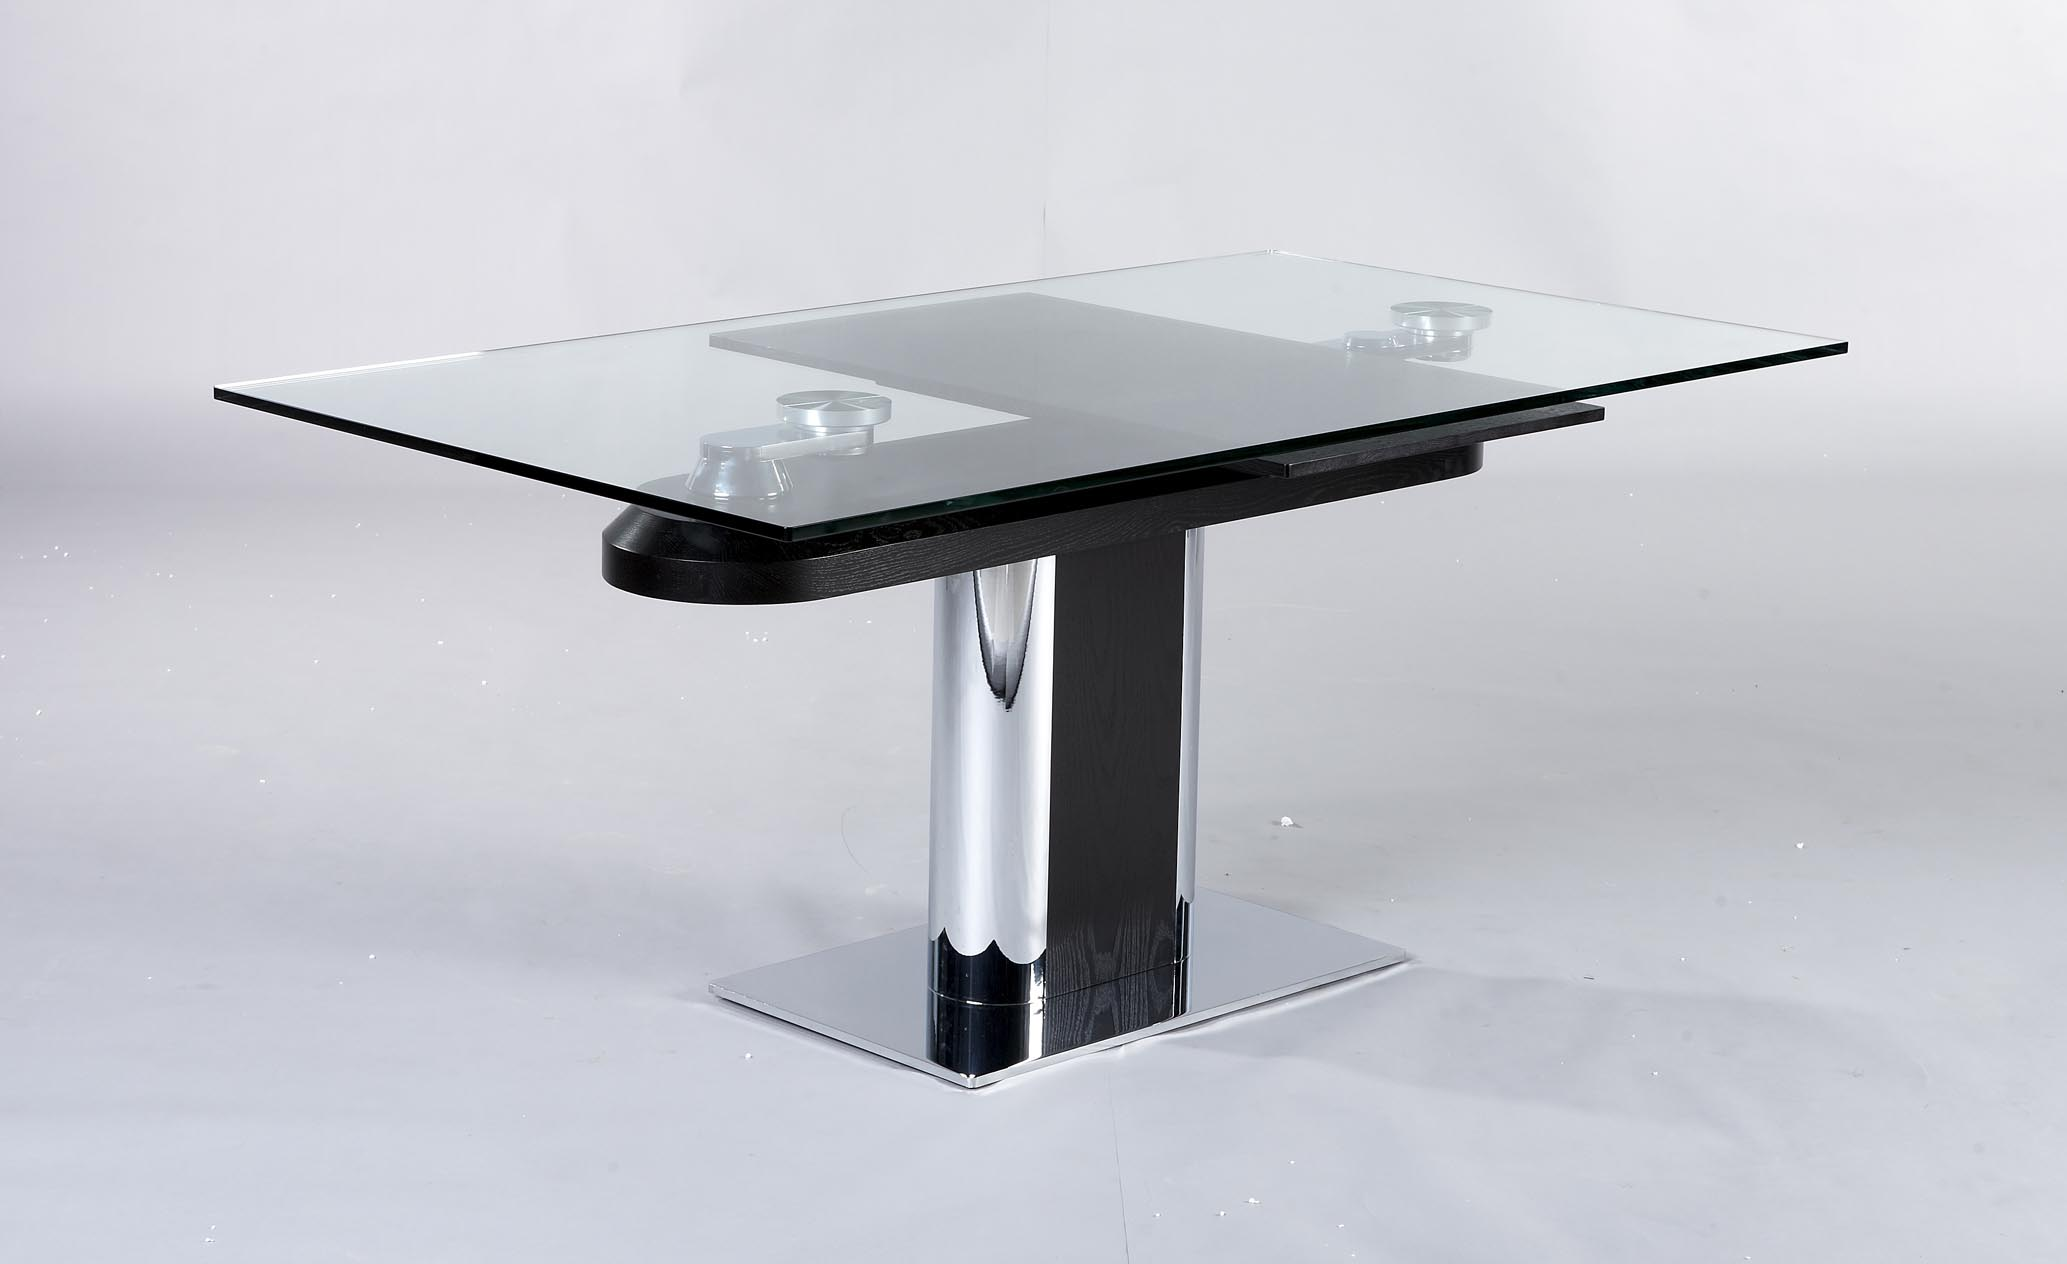 Table salle manger design en verre avec rallonges for Table de salle a manger extensible design